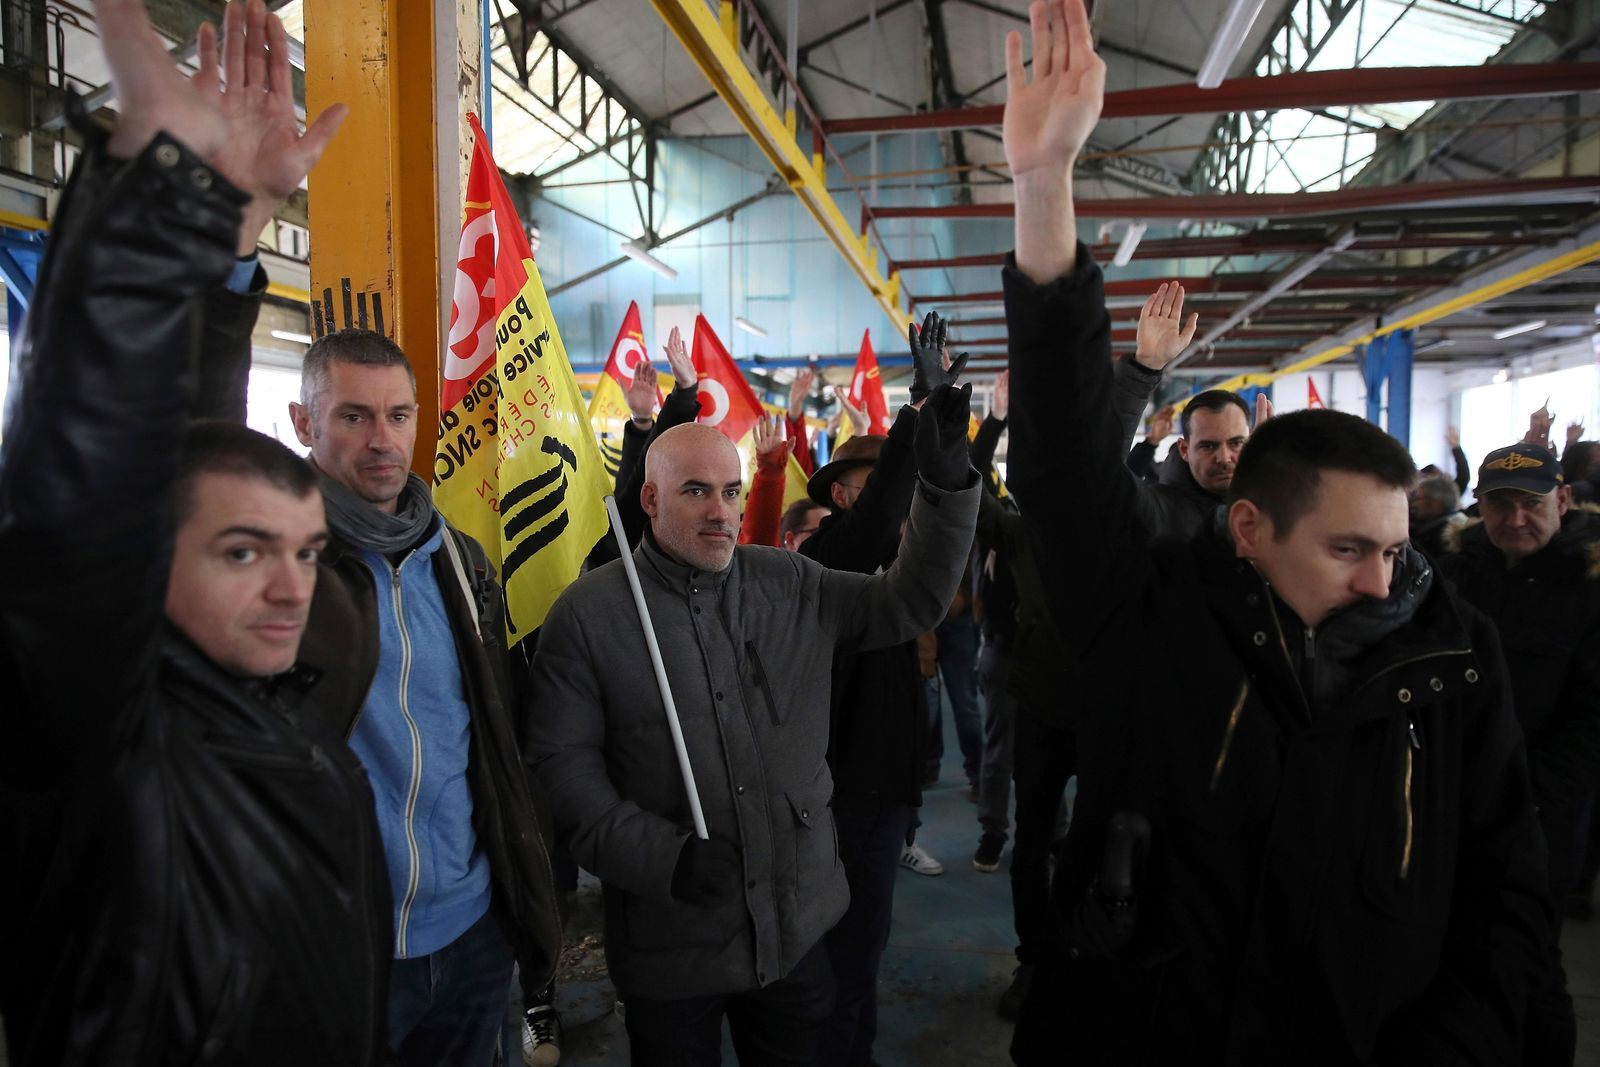 Railway workers votes during a meeting of the CGT union in Rennes, western France, Monday, Dec. 9, 2019. (AP Photo/David Vincent)